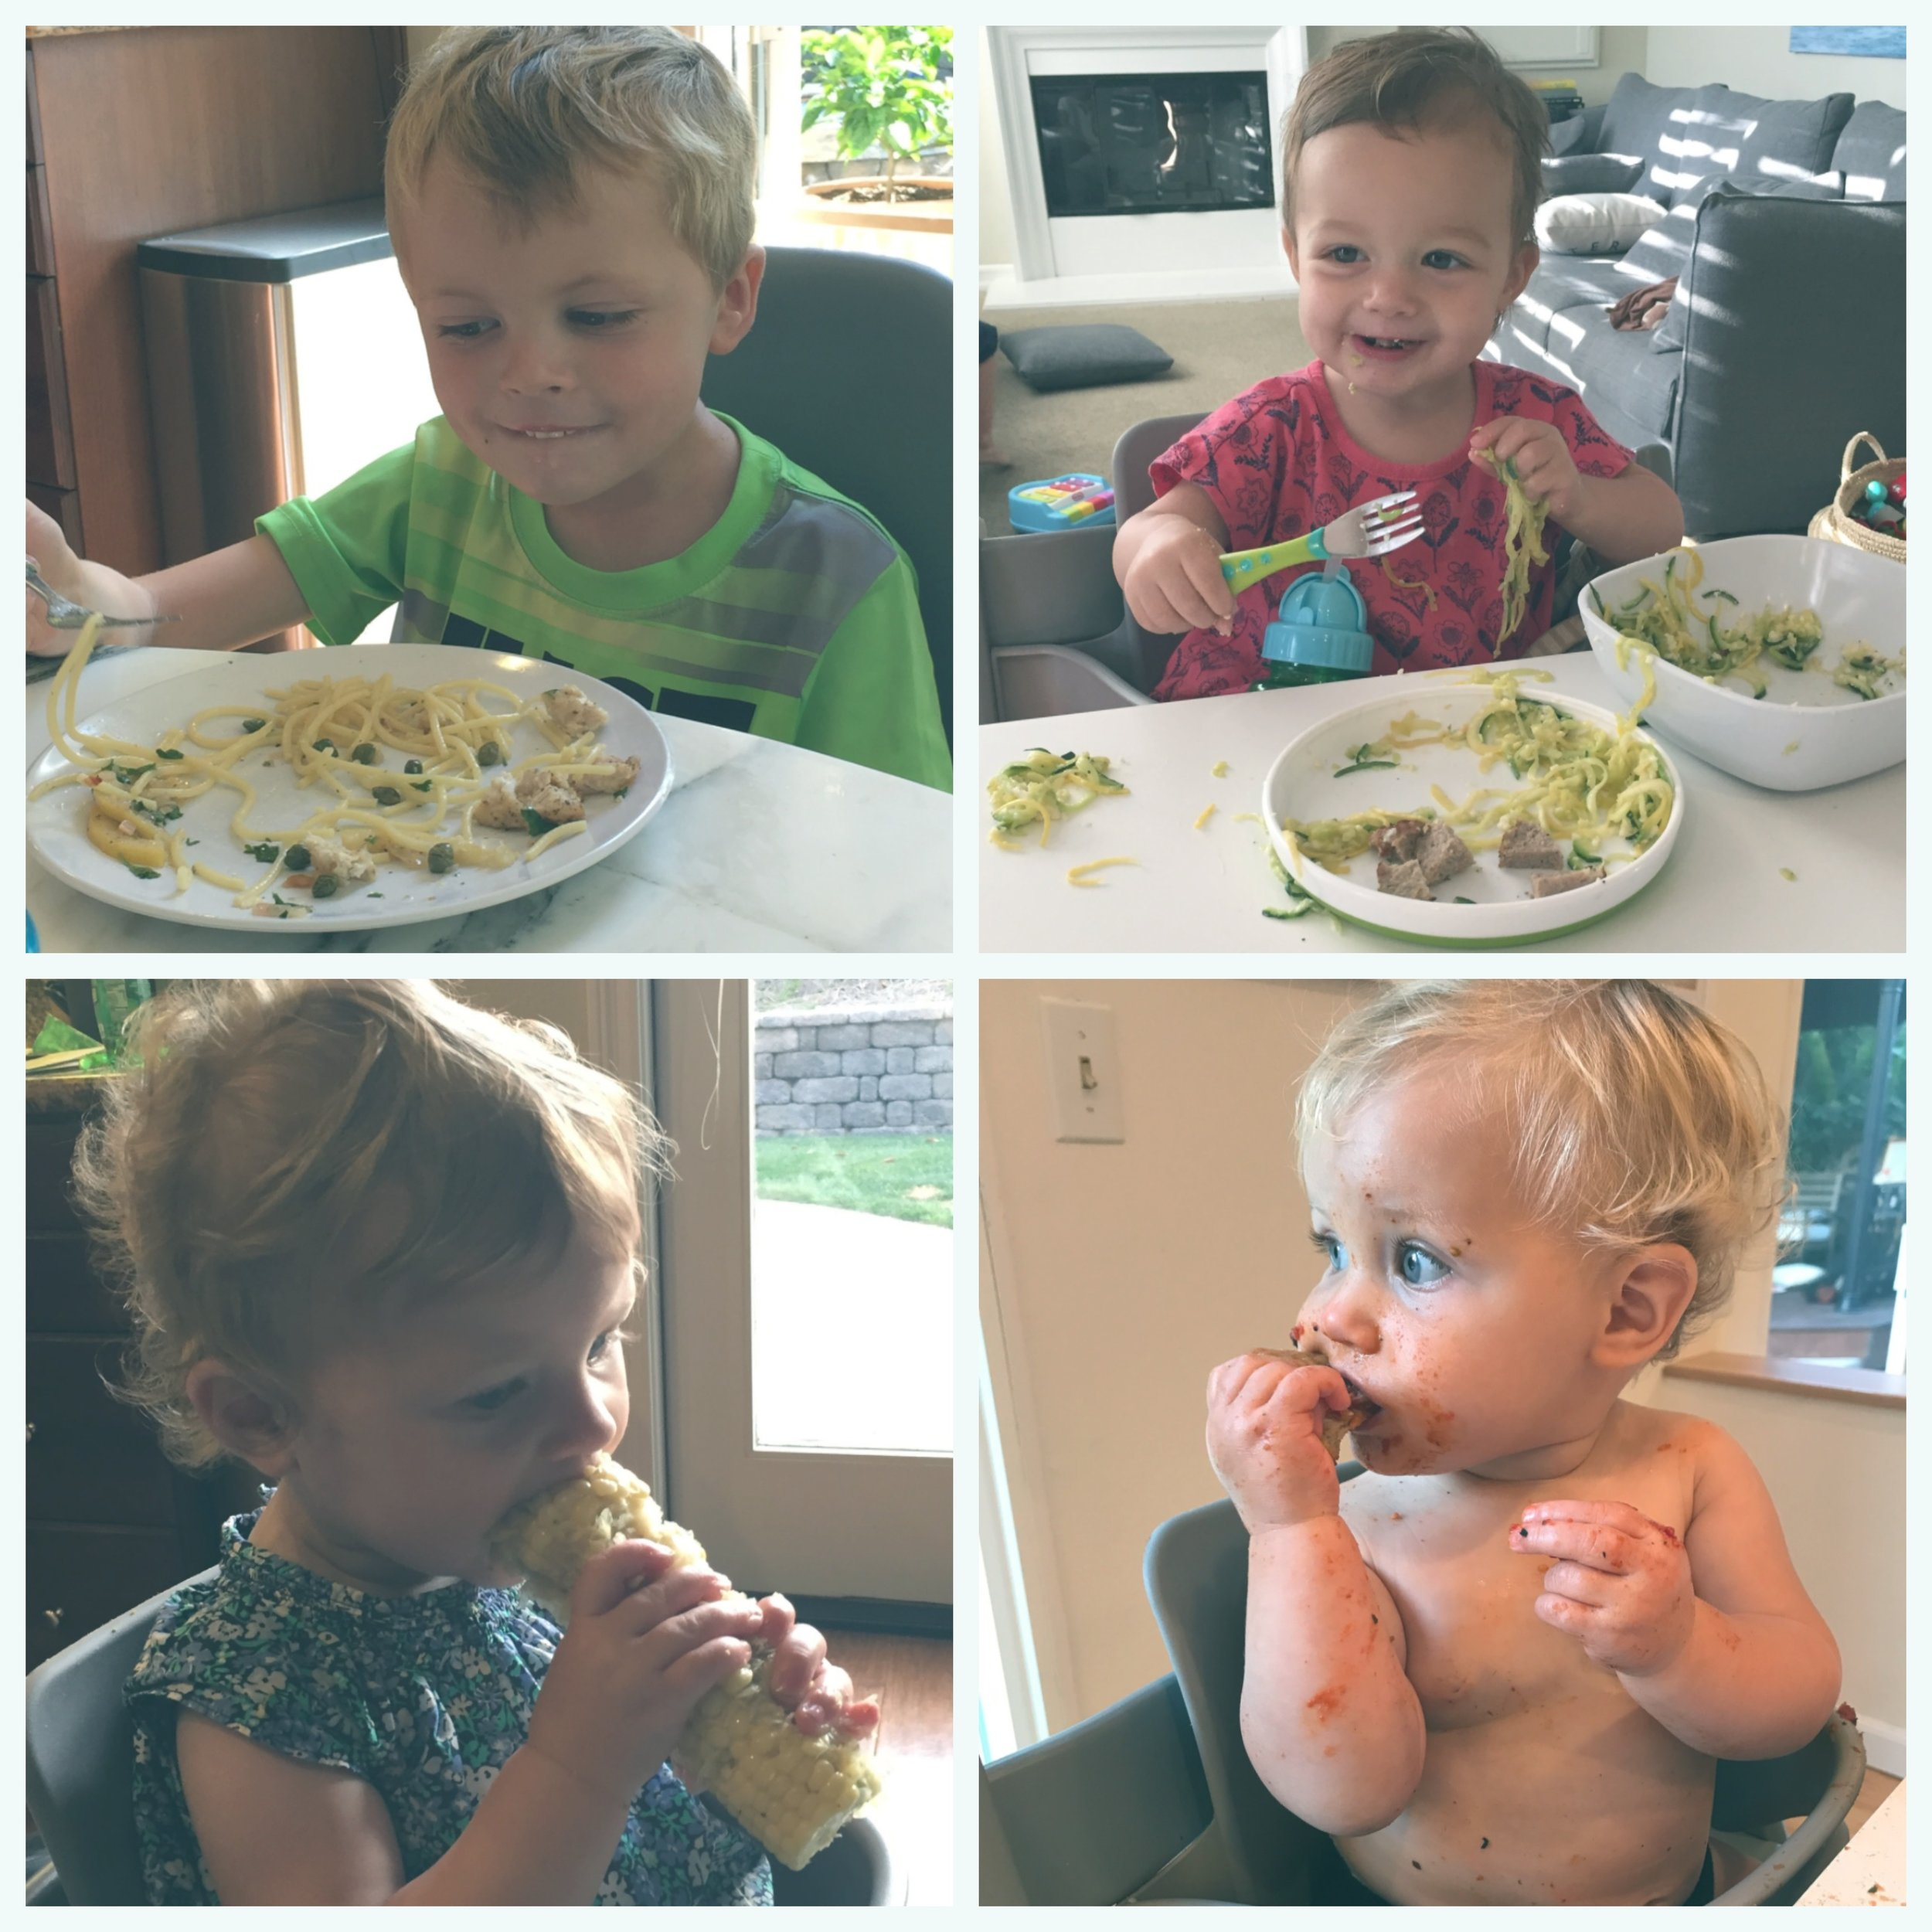 Four very different eaters at the dinner table.